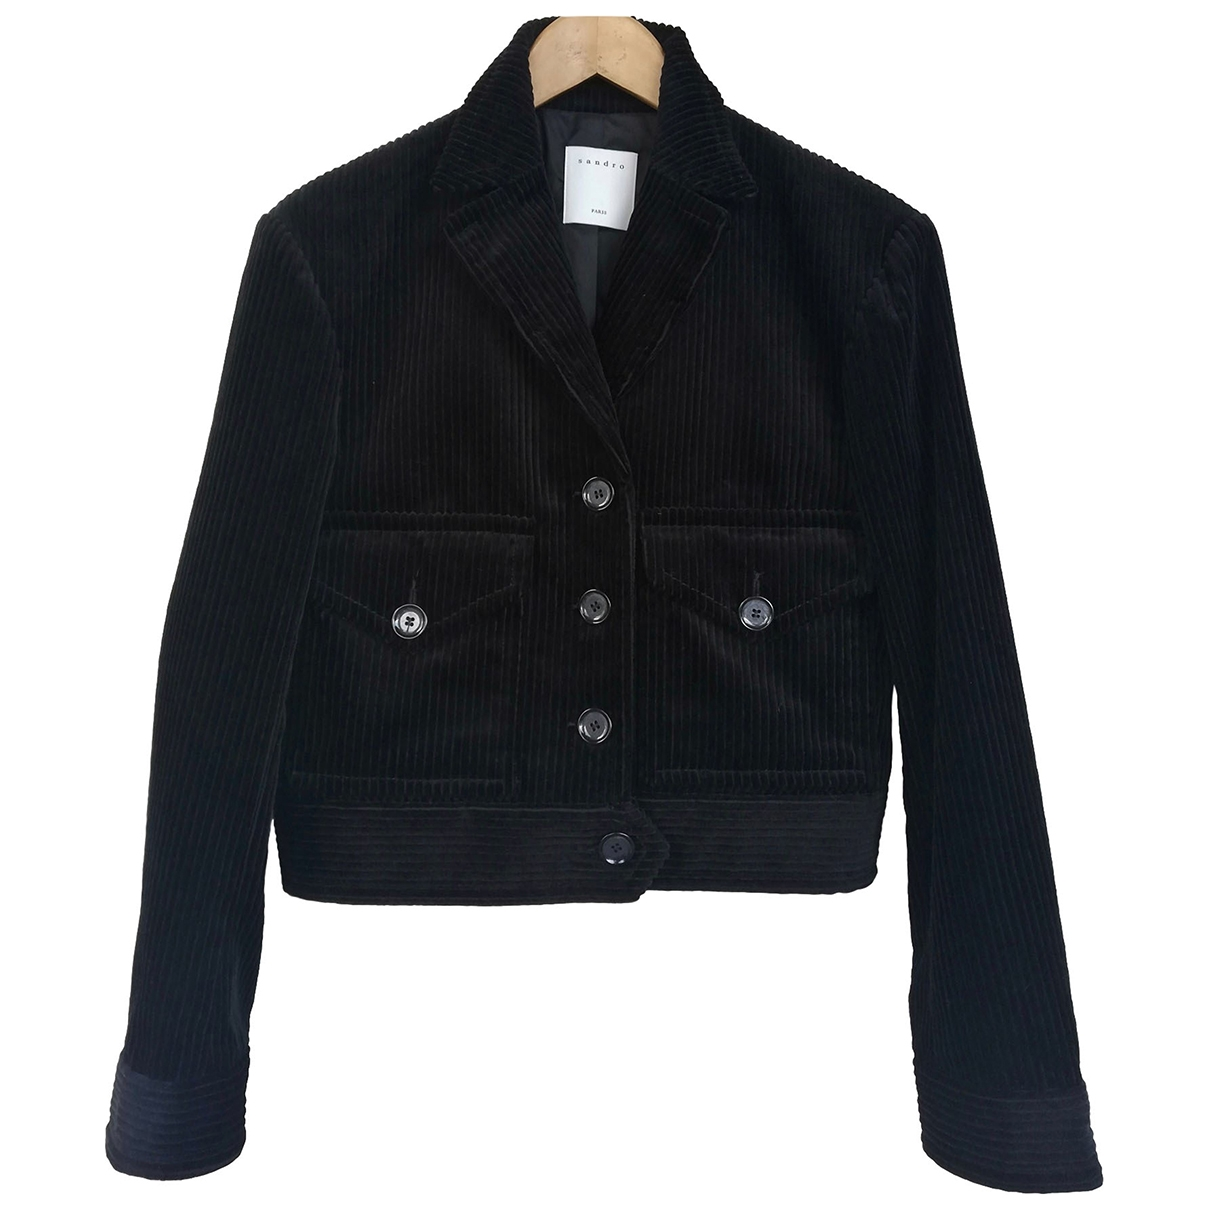 Sandro \N Black Cotton jacket for Women 36 FR